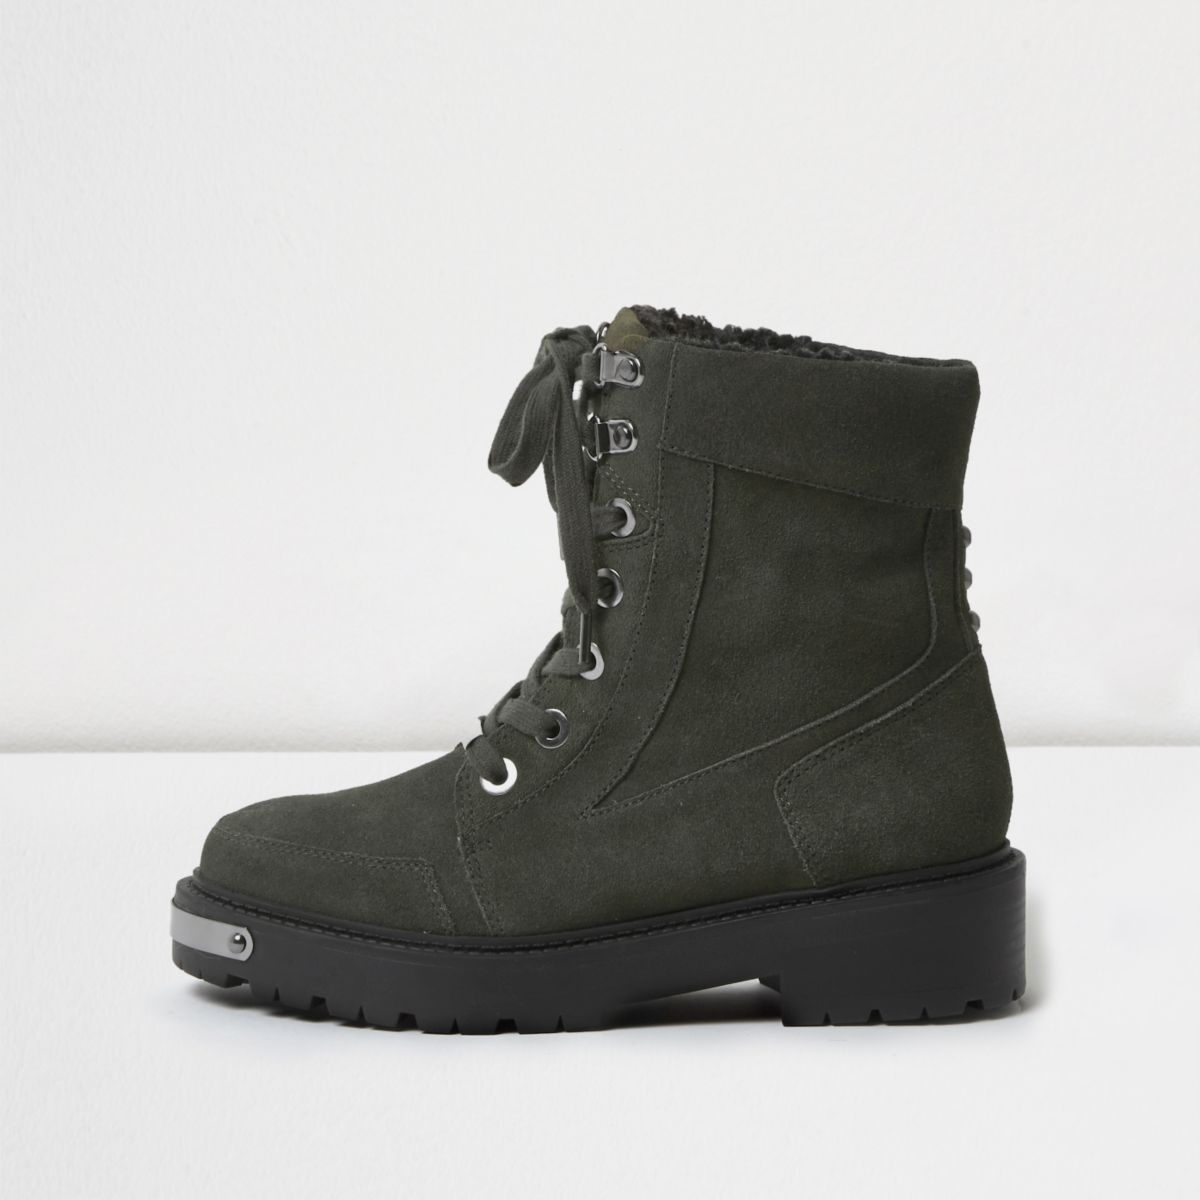 Khaki green suede chunky lace-up boots